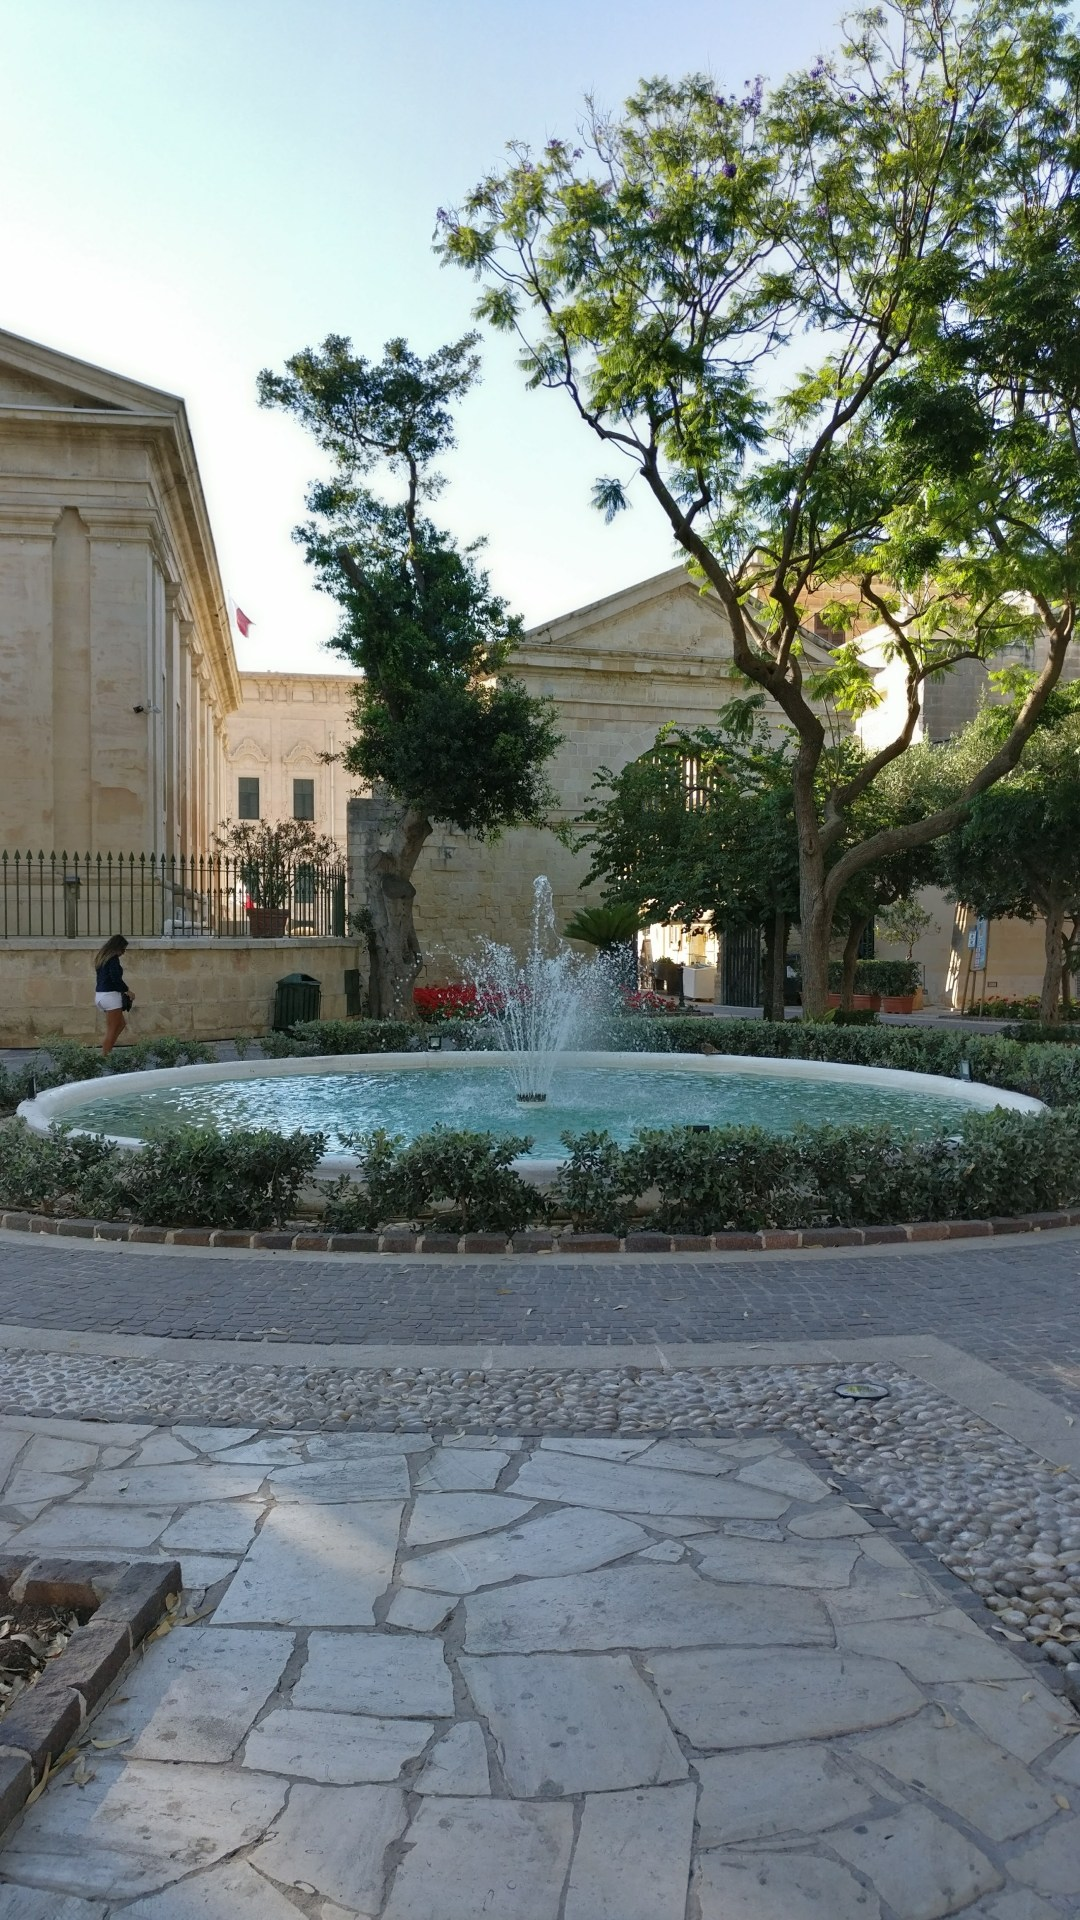 Upper Barrakka Gardens in Valletta - Day 2 in Malta- St Peter's Pool and the area of Valletta